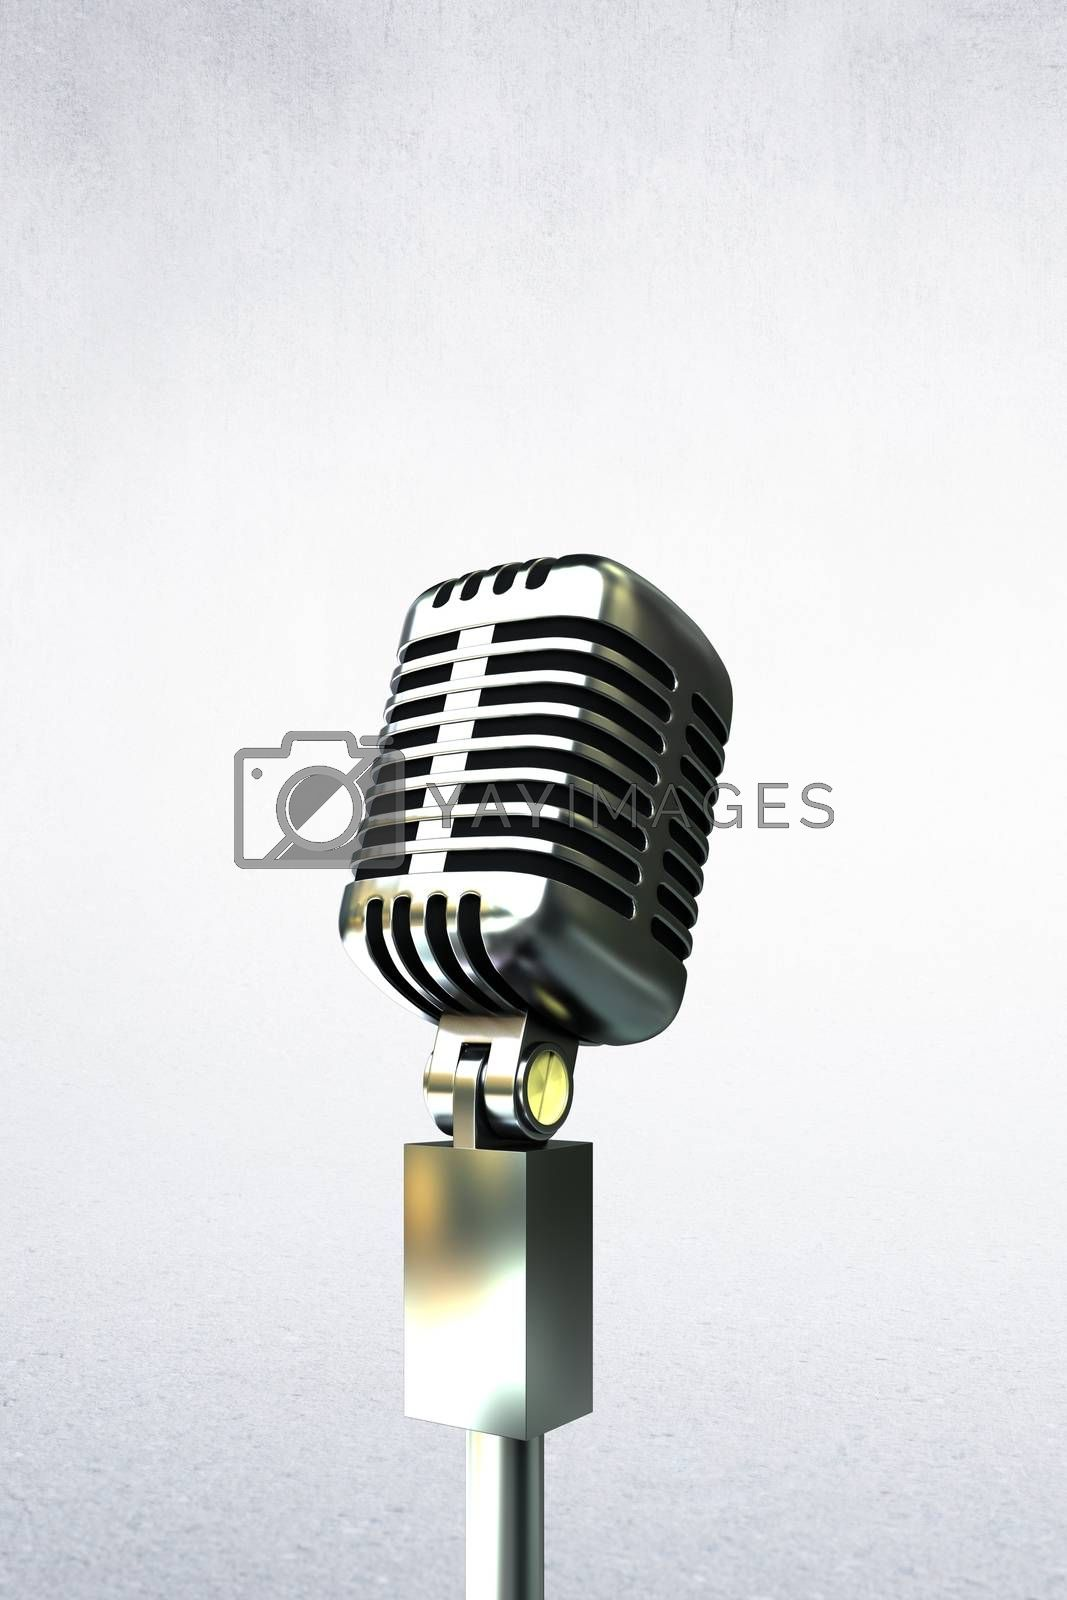 Composite image of people enjoying a microphone in a white background